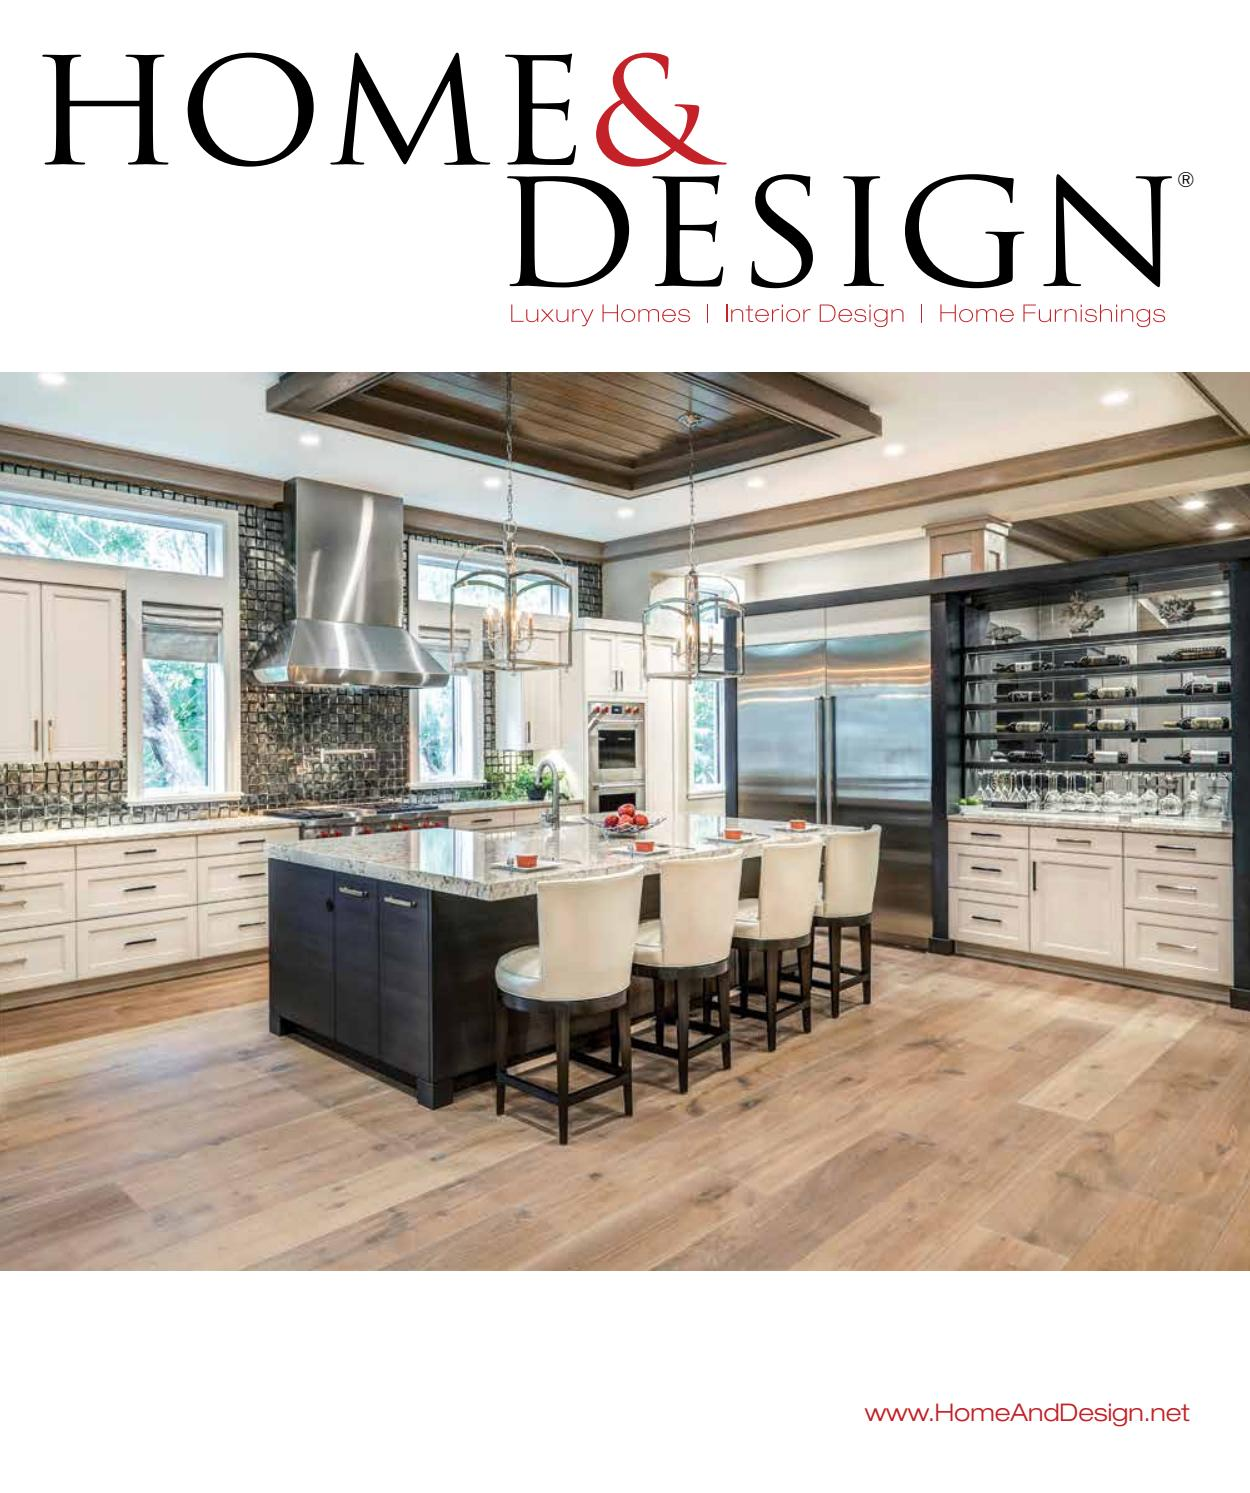 Home Design Magazine 2016 Suncoast Florida Edition By Anthony Spano Issuu